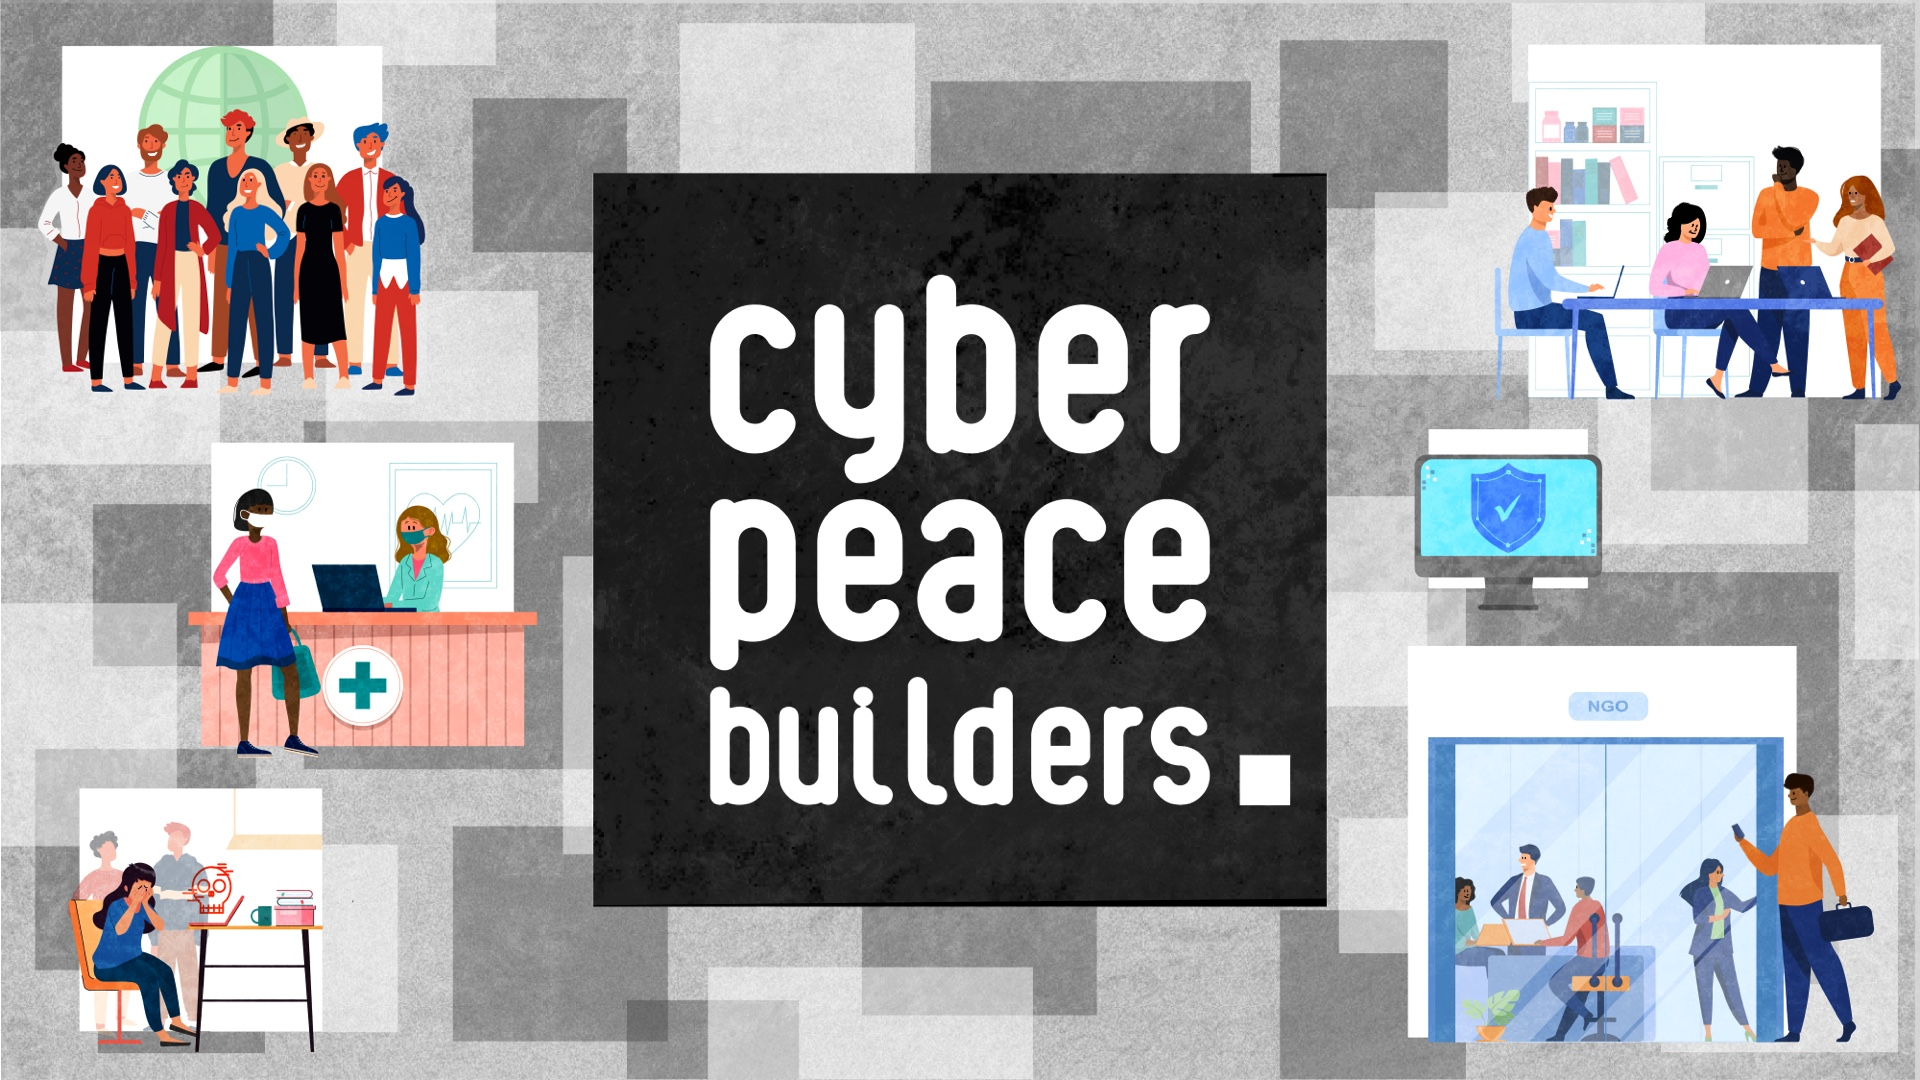 A new generation of peacebuilders is born: welcome to the CyberPeace Builders